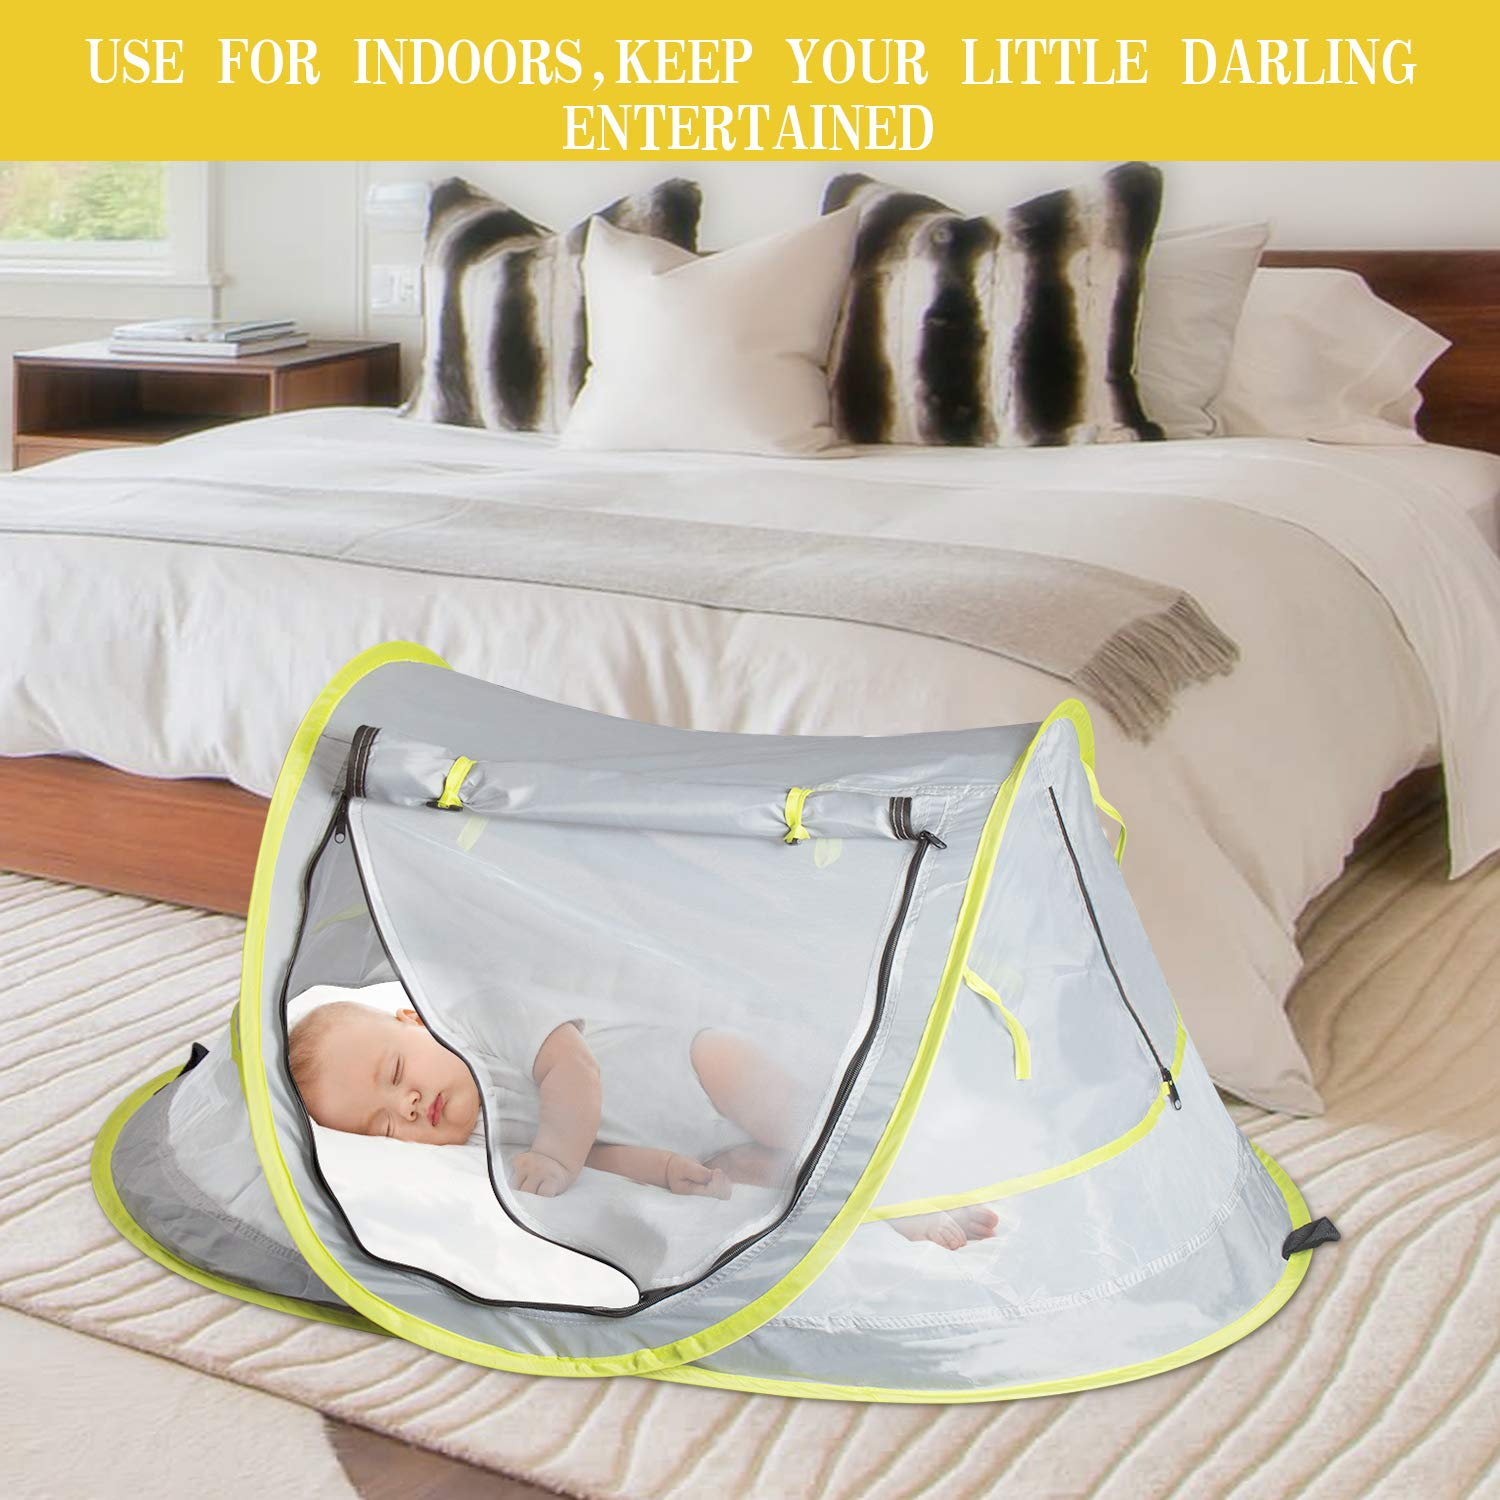 Baby Beach Tent UV Protection UPF 50+ Instant Beach Tent Sun Shelter Pop-up Outdoor Portable Newborn Travel Cribs Bed with Sleeping Pad, Mosquito Net and 2 Pegs Ultralight Weight by Monocho by Monocho (Image #6)